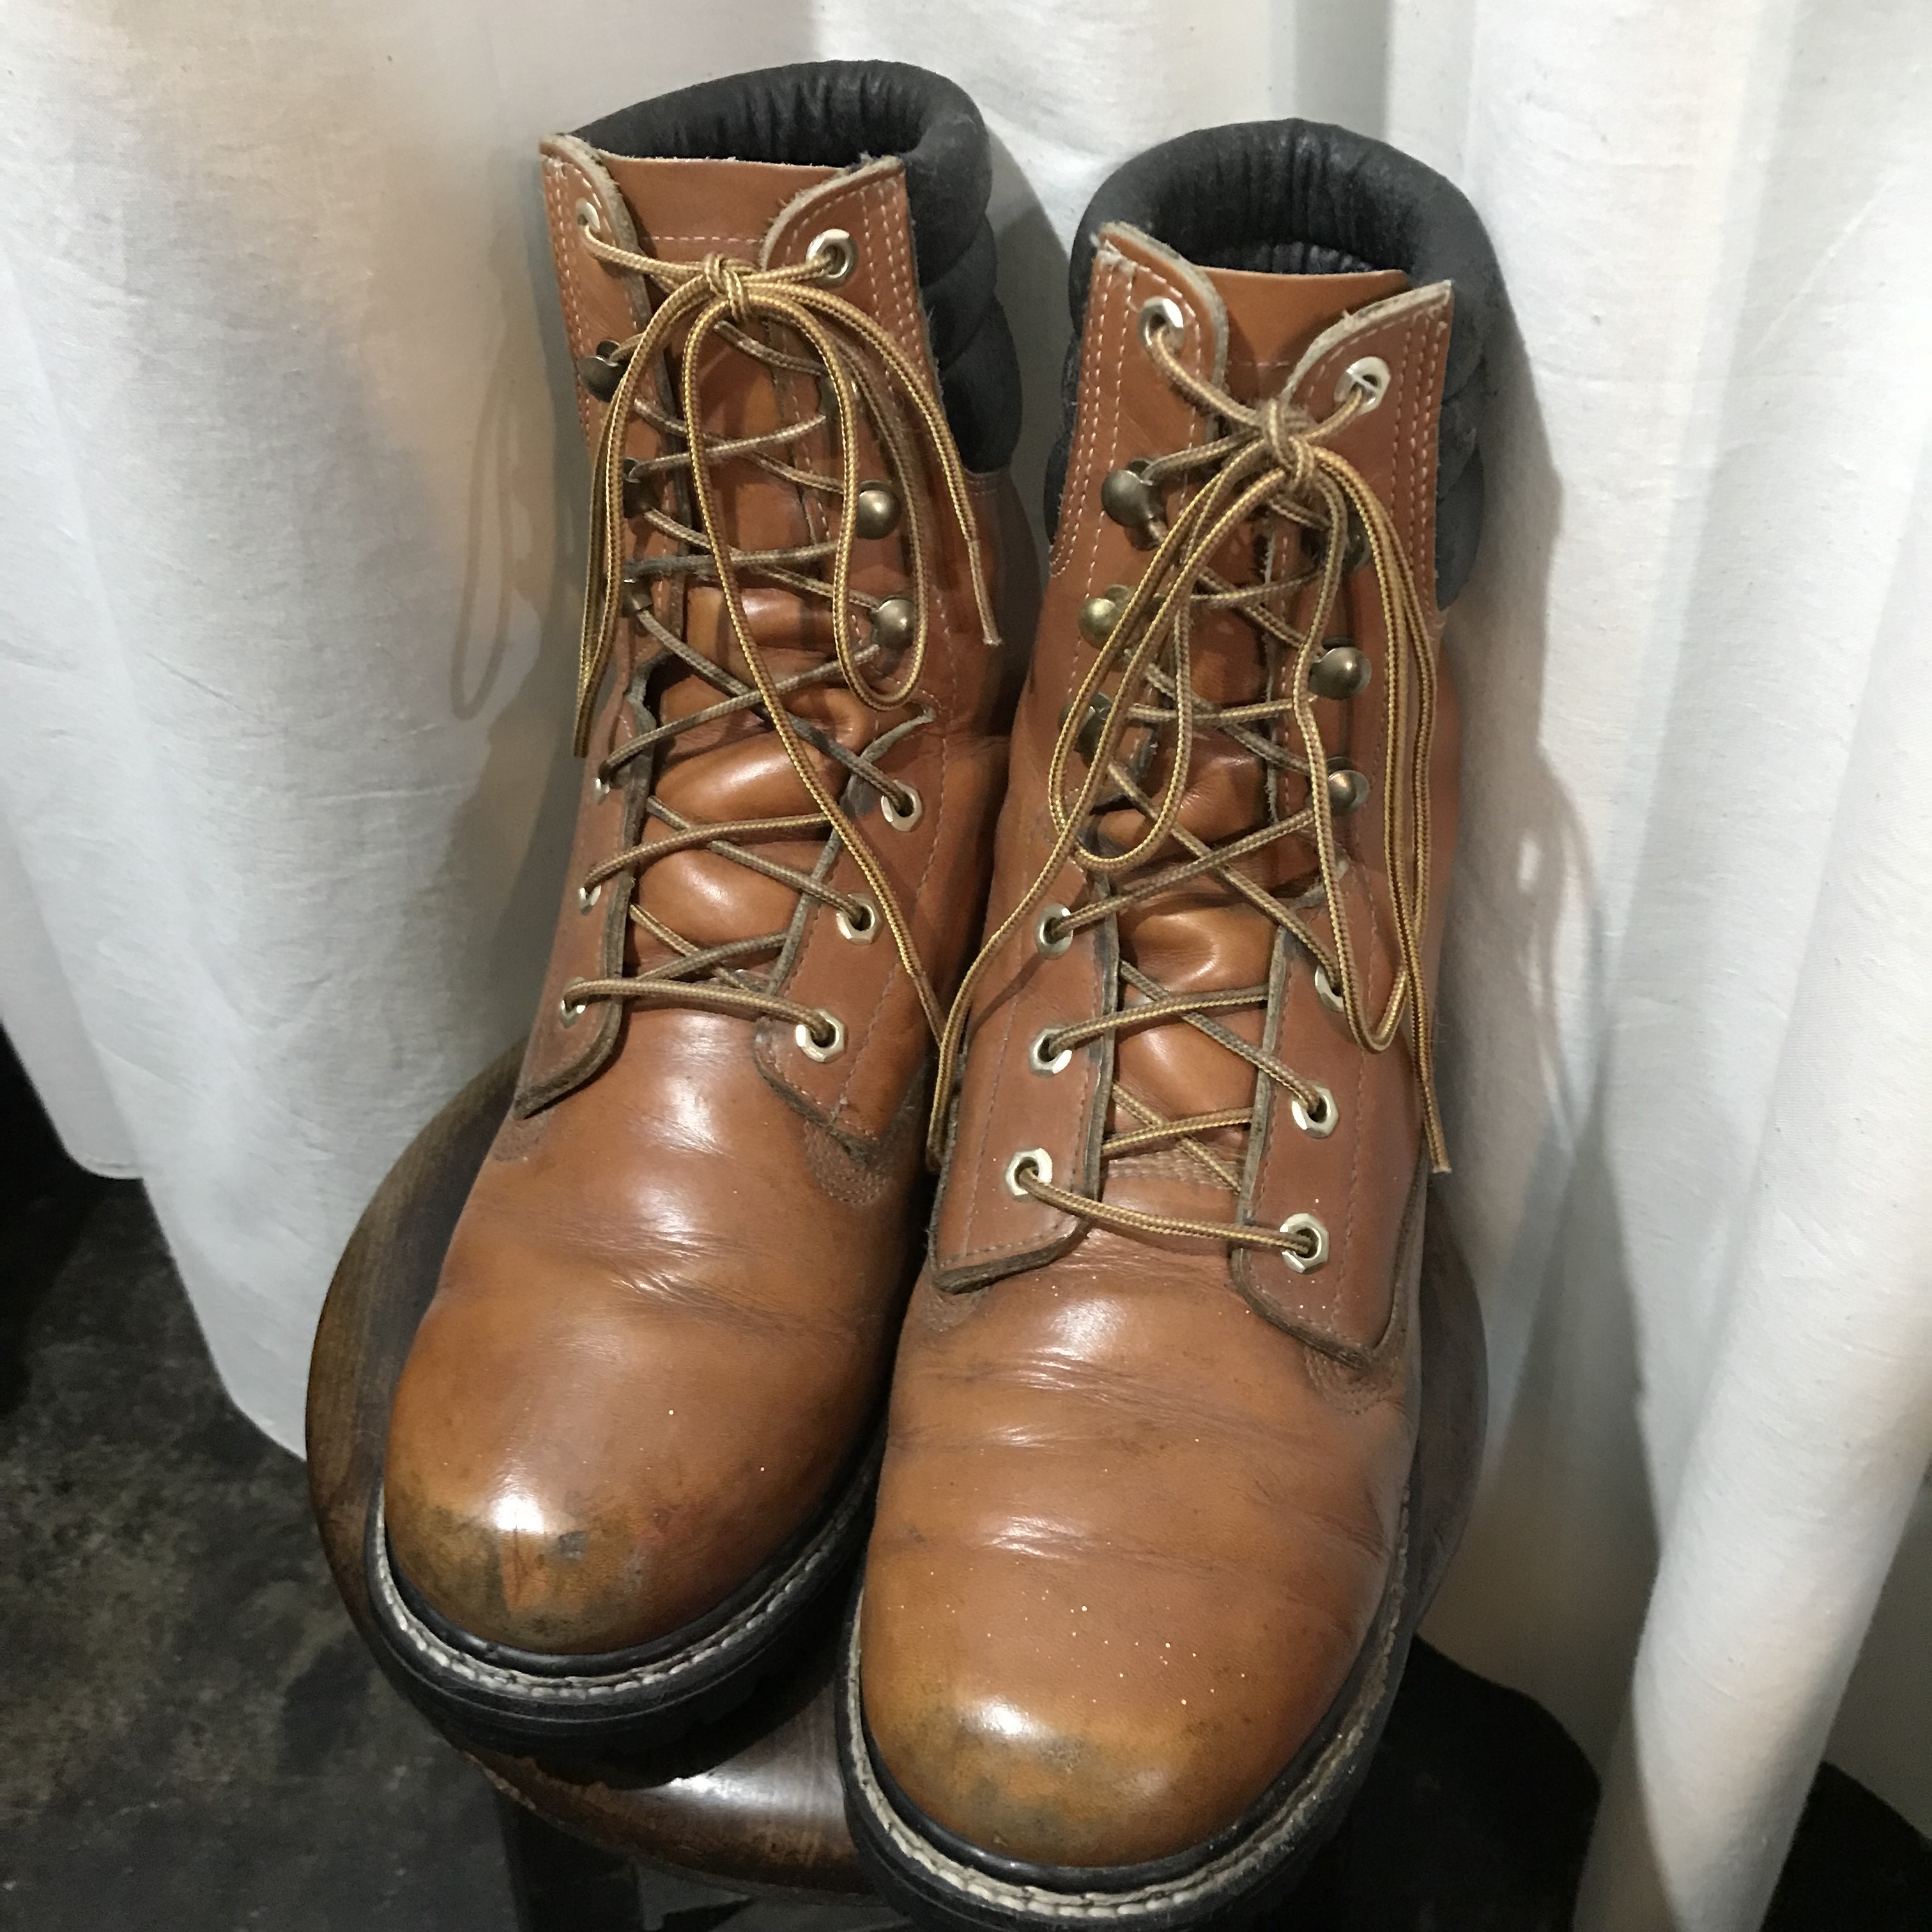 The Great Lakes Boot by Wolverine ウルヴァリン レザーブーツ 27.0cm